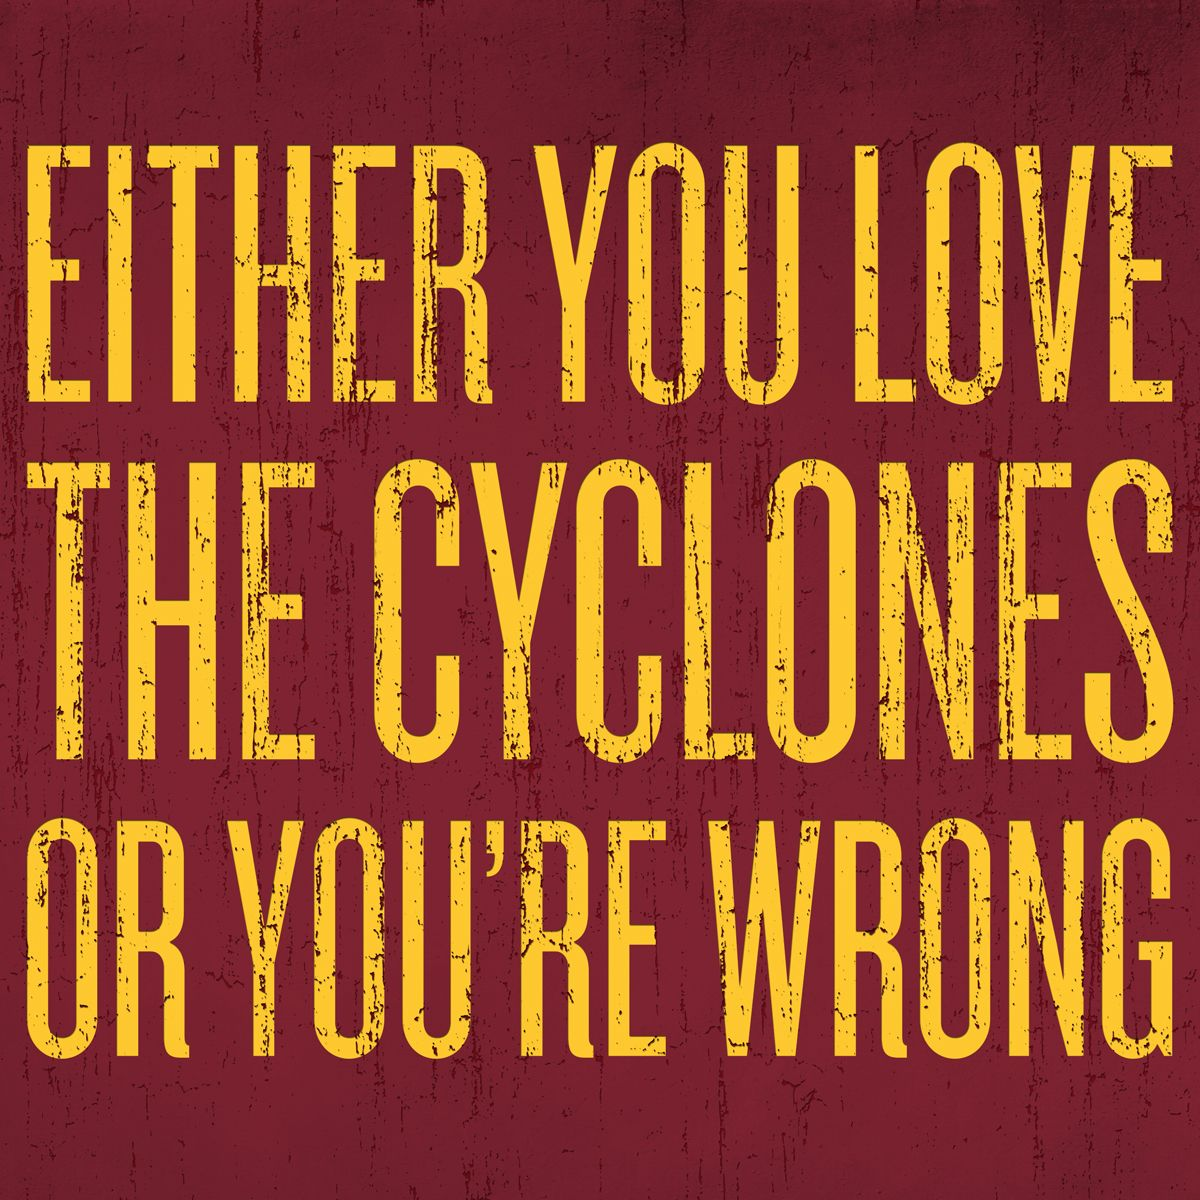 Pin By Iowa State Athletics On Cyclone E Cards Iowa State Cyclones Iowa State University Cyclone